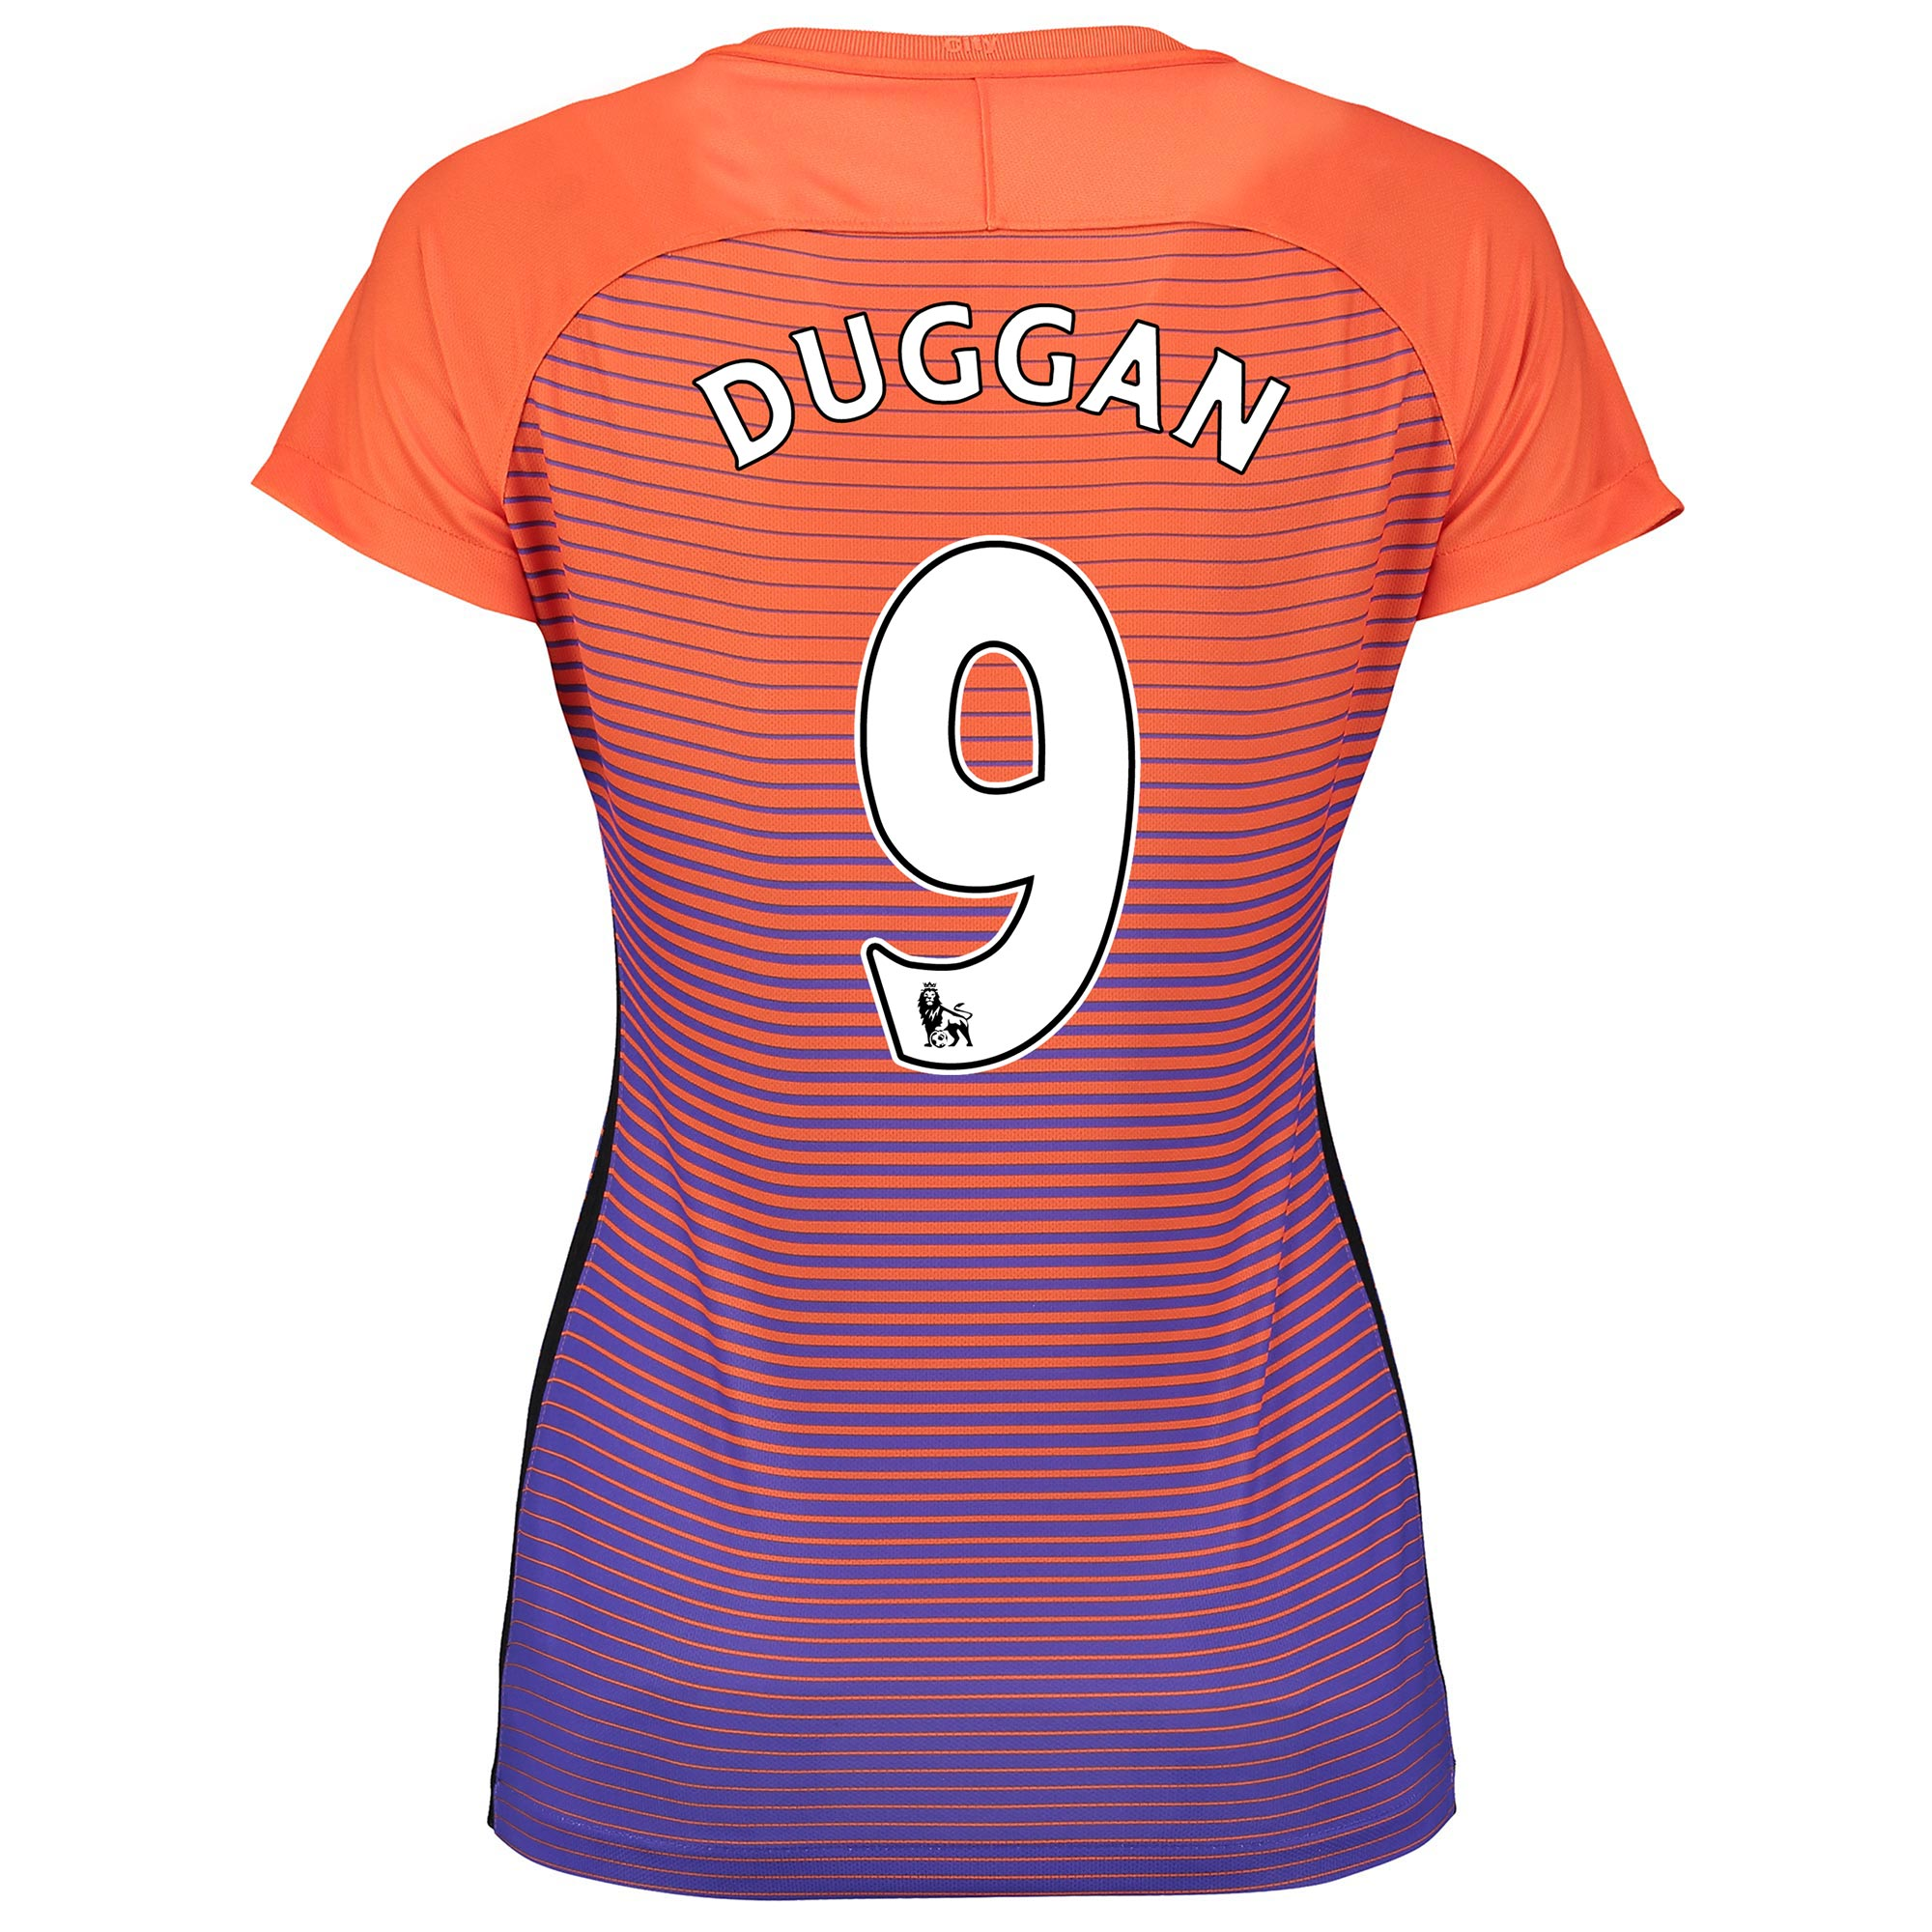 Manchester City Third Stadium Shirt 2016-17 - Womens with Duggan 9 pri